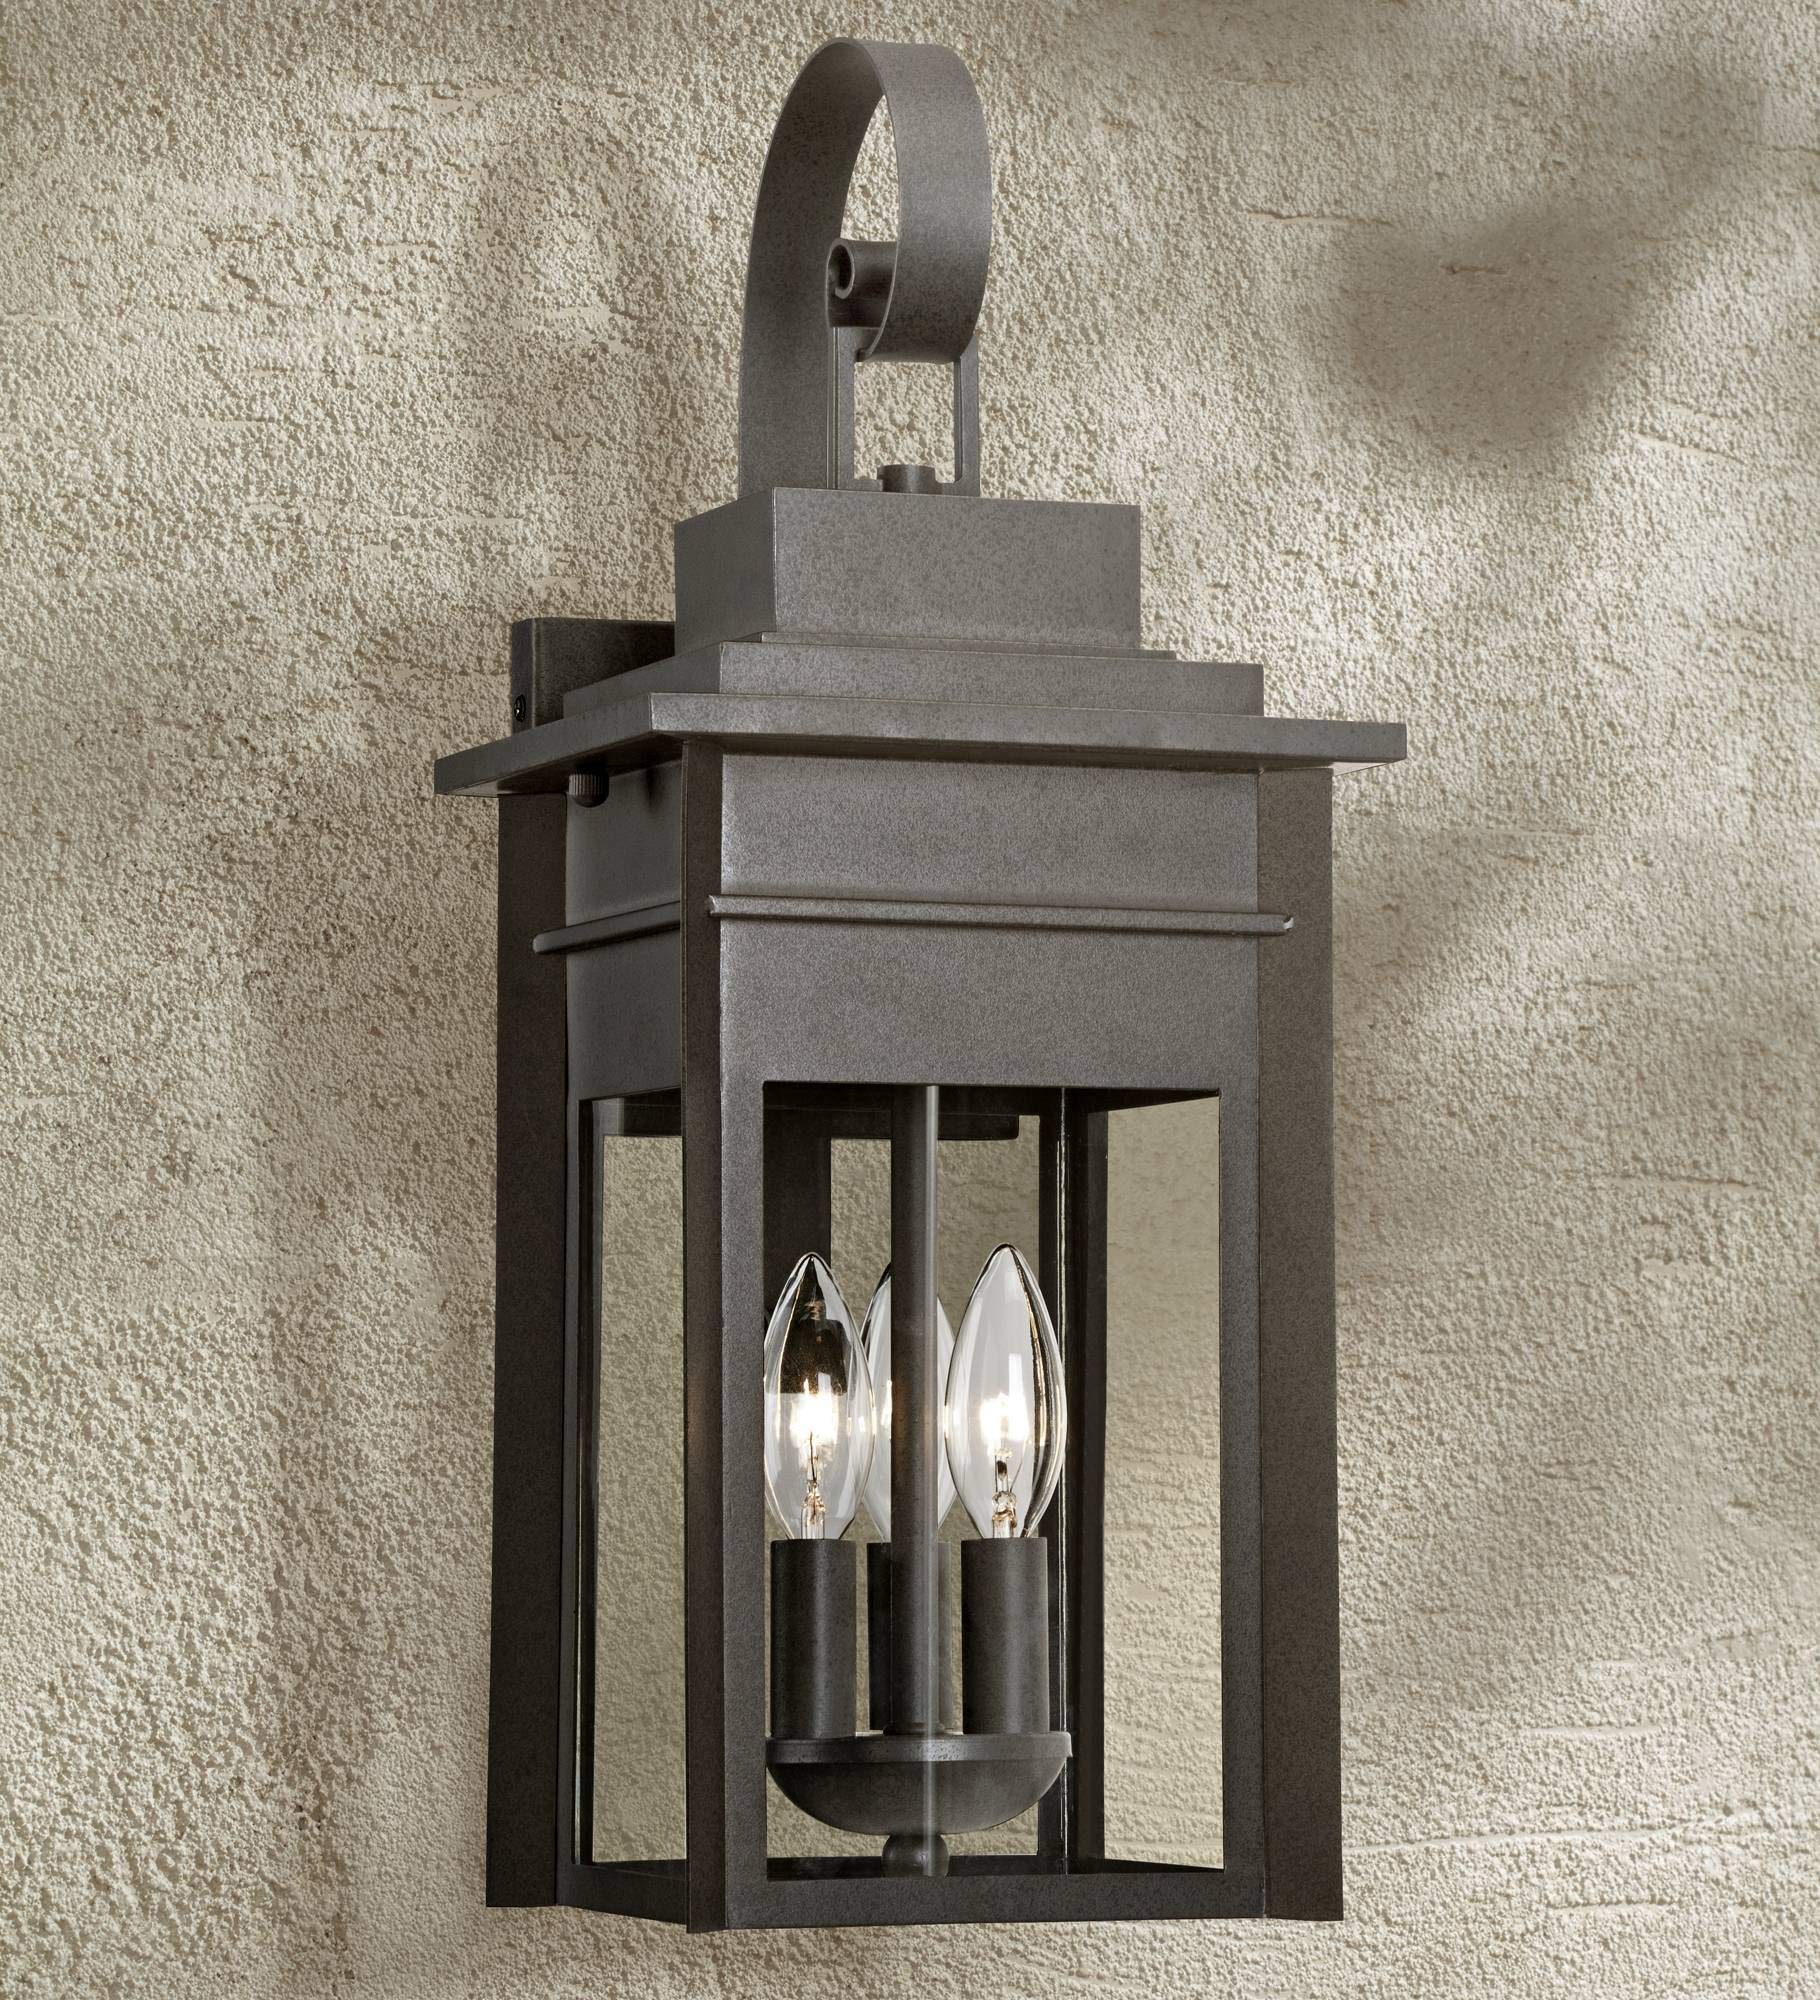 Bransford Traditional Outdoor Wall Light Fixture Black Specked Gray Curved Arm 19'' Lantern Clear Glass for Exterior House Porch Patio Deck - Franklin Iron Works